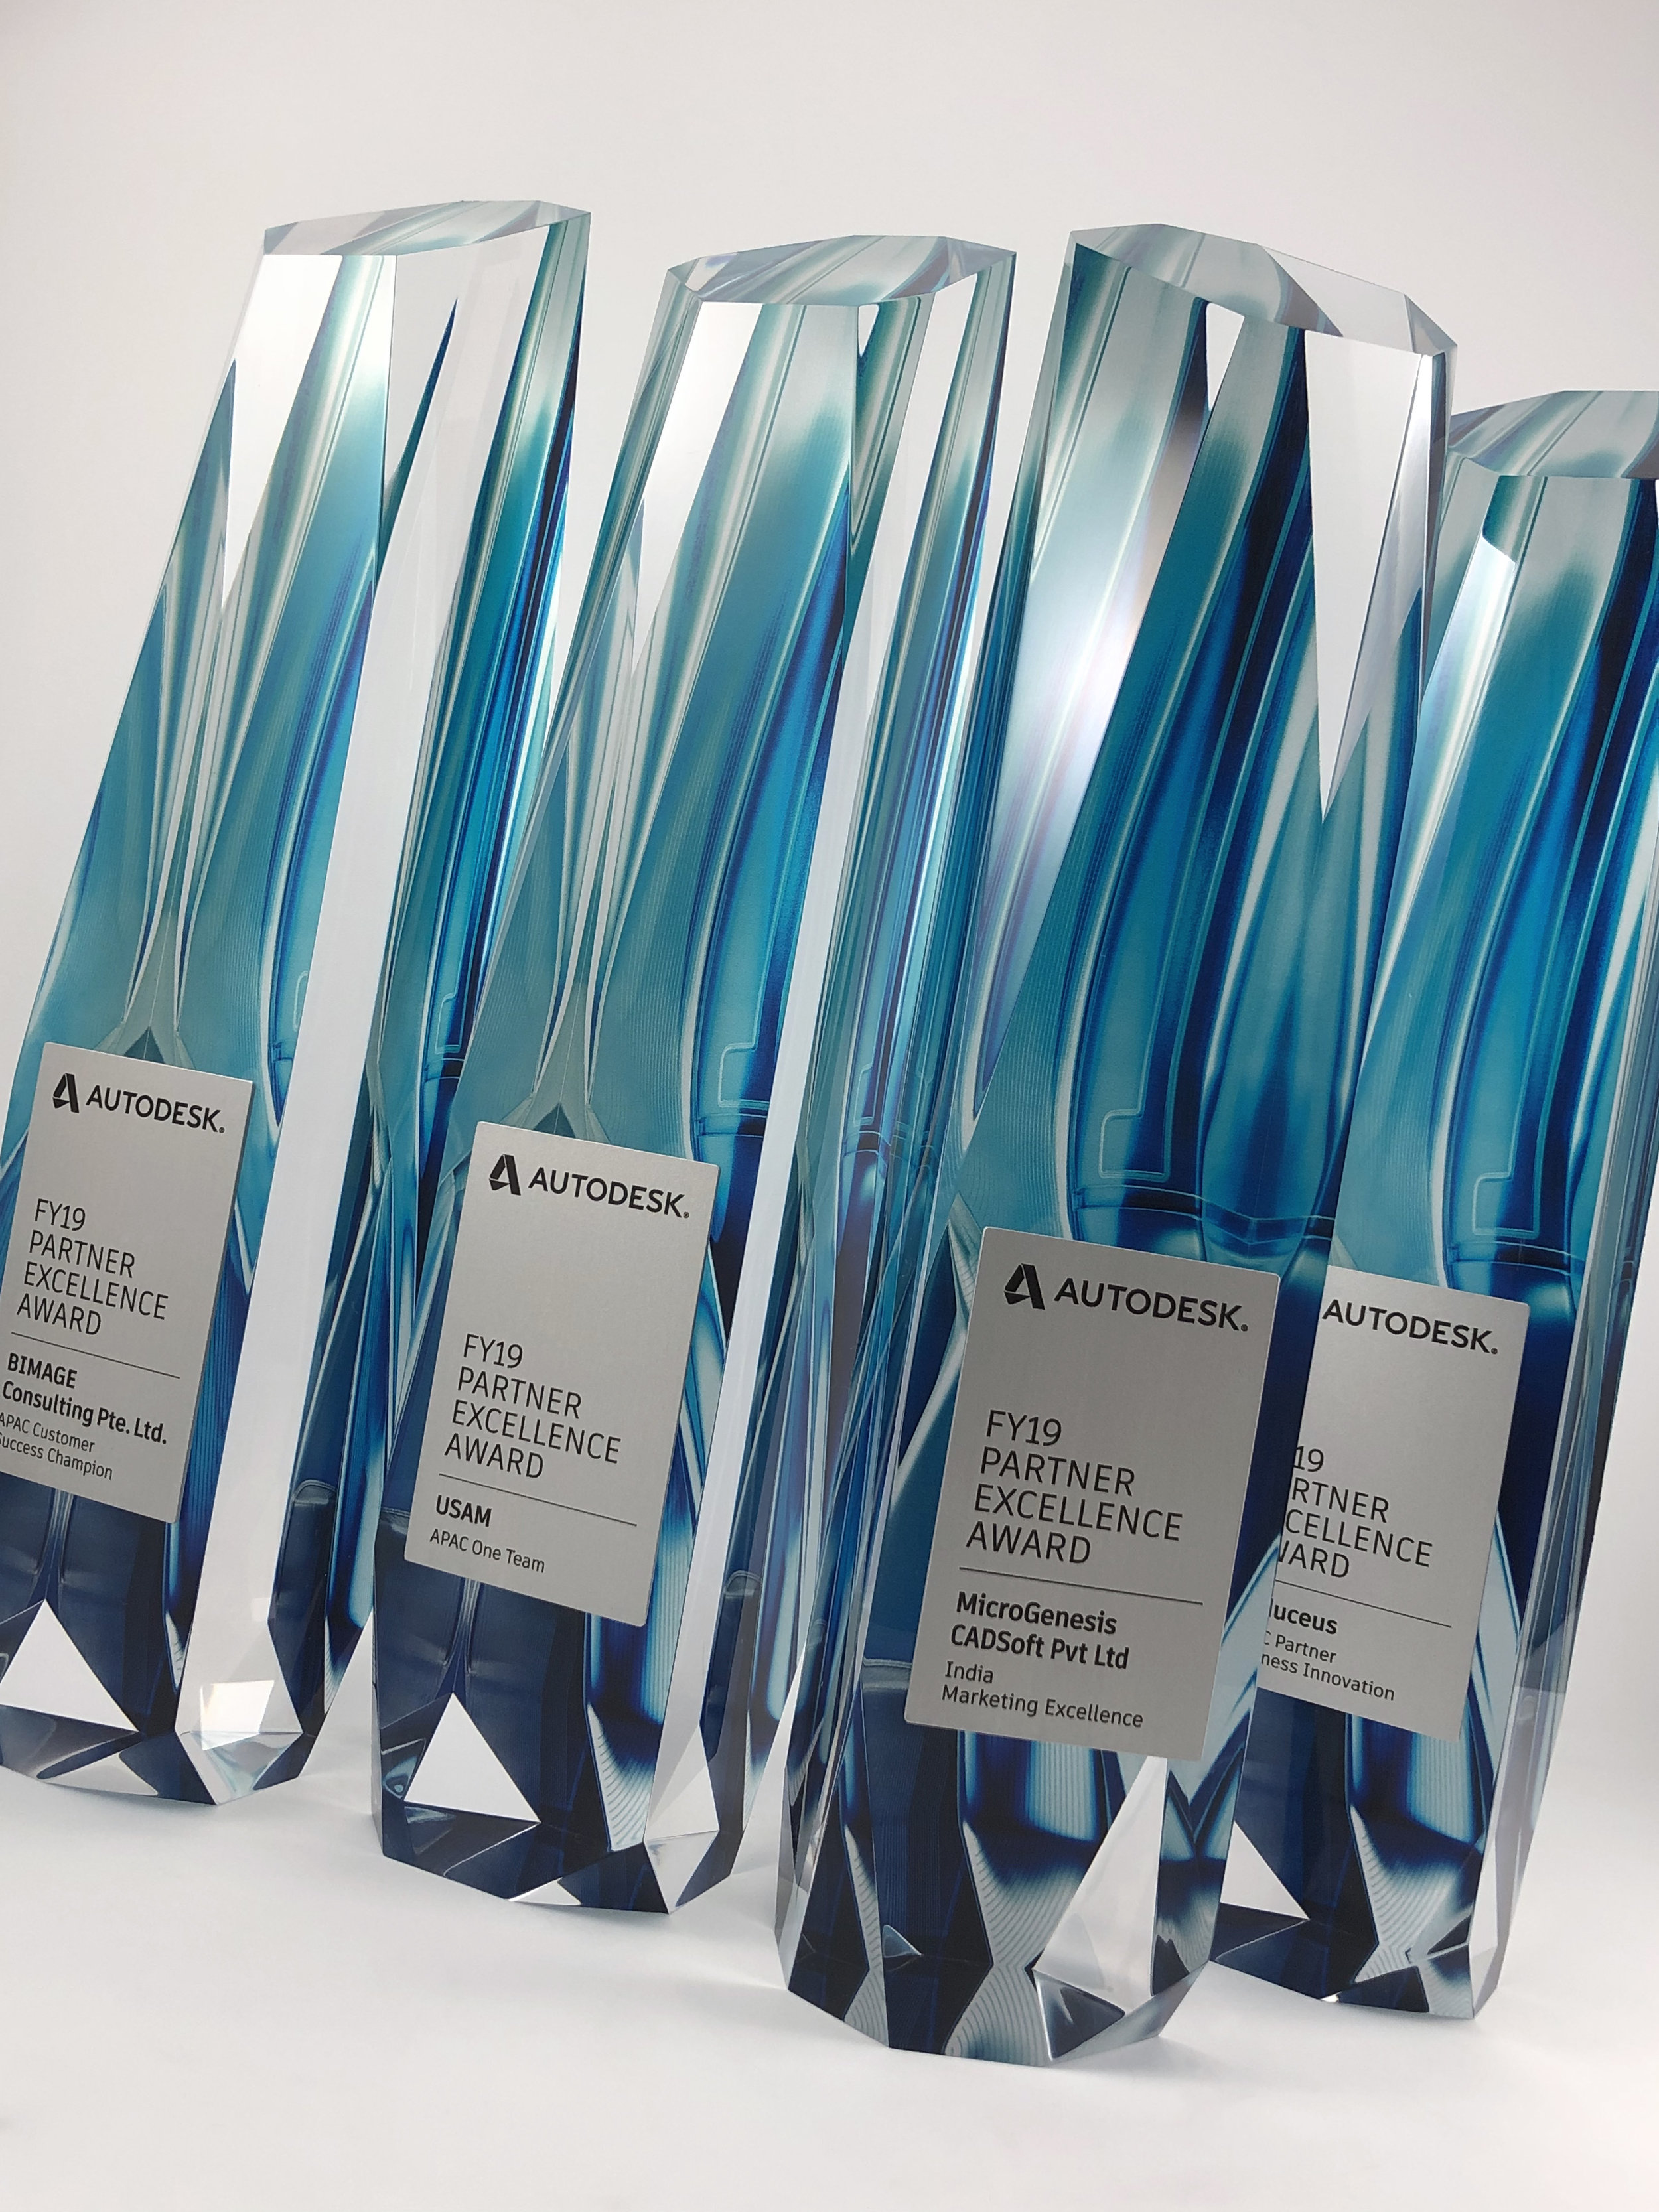 autodesck-apac-partner-excellence-awards-acrylic-graphic-art-trophy-07.jpg